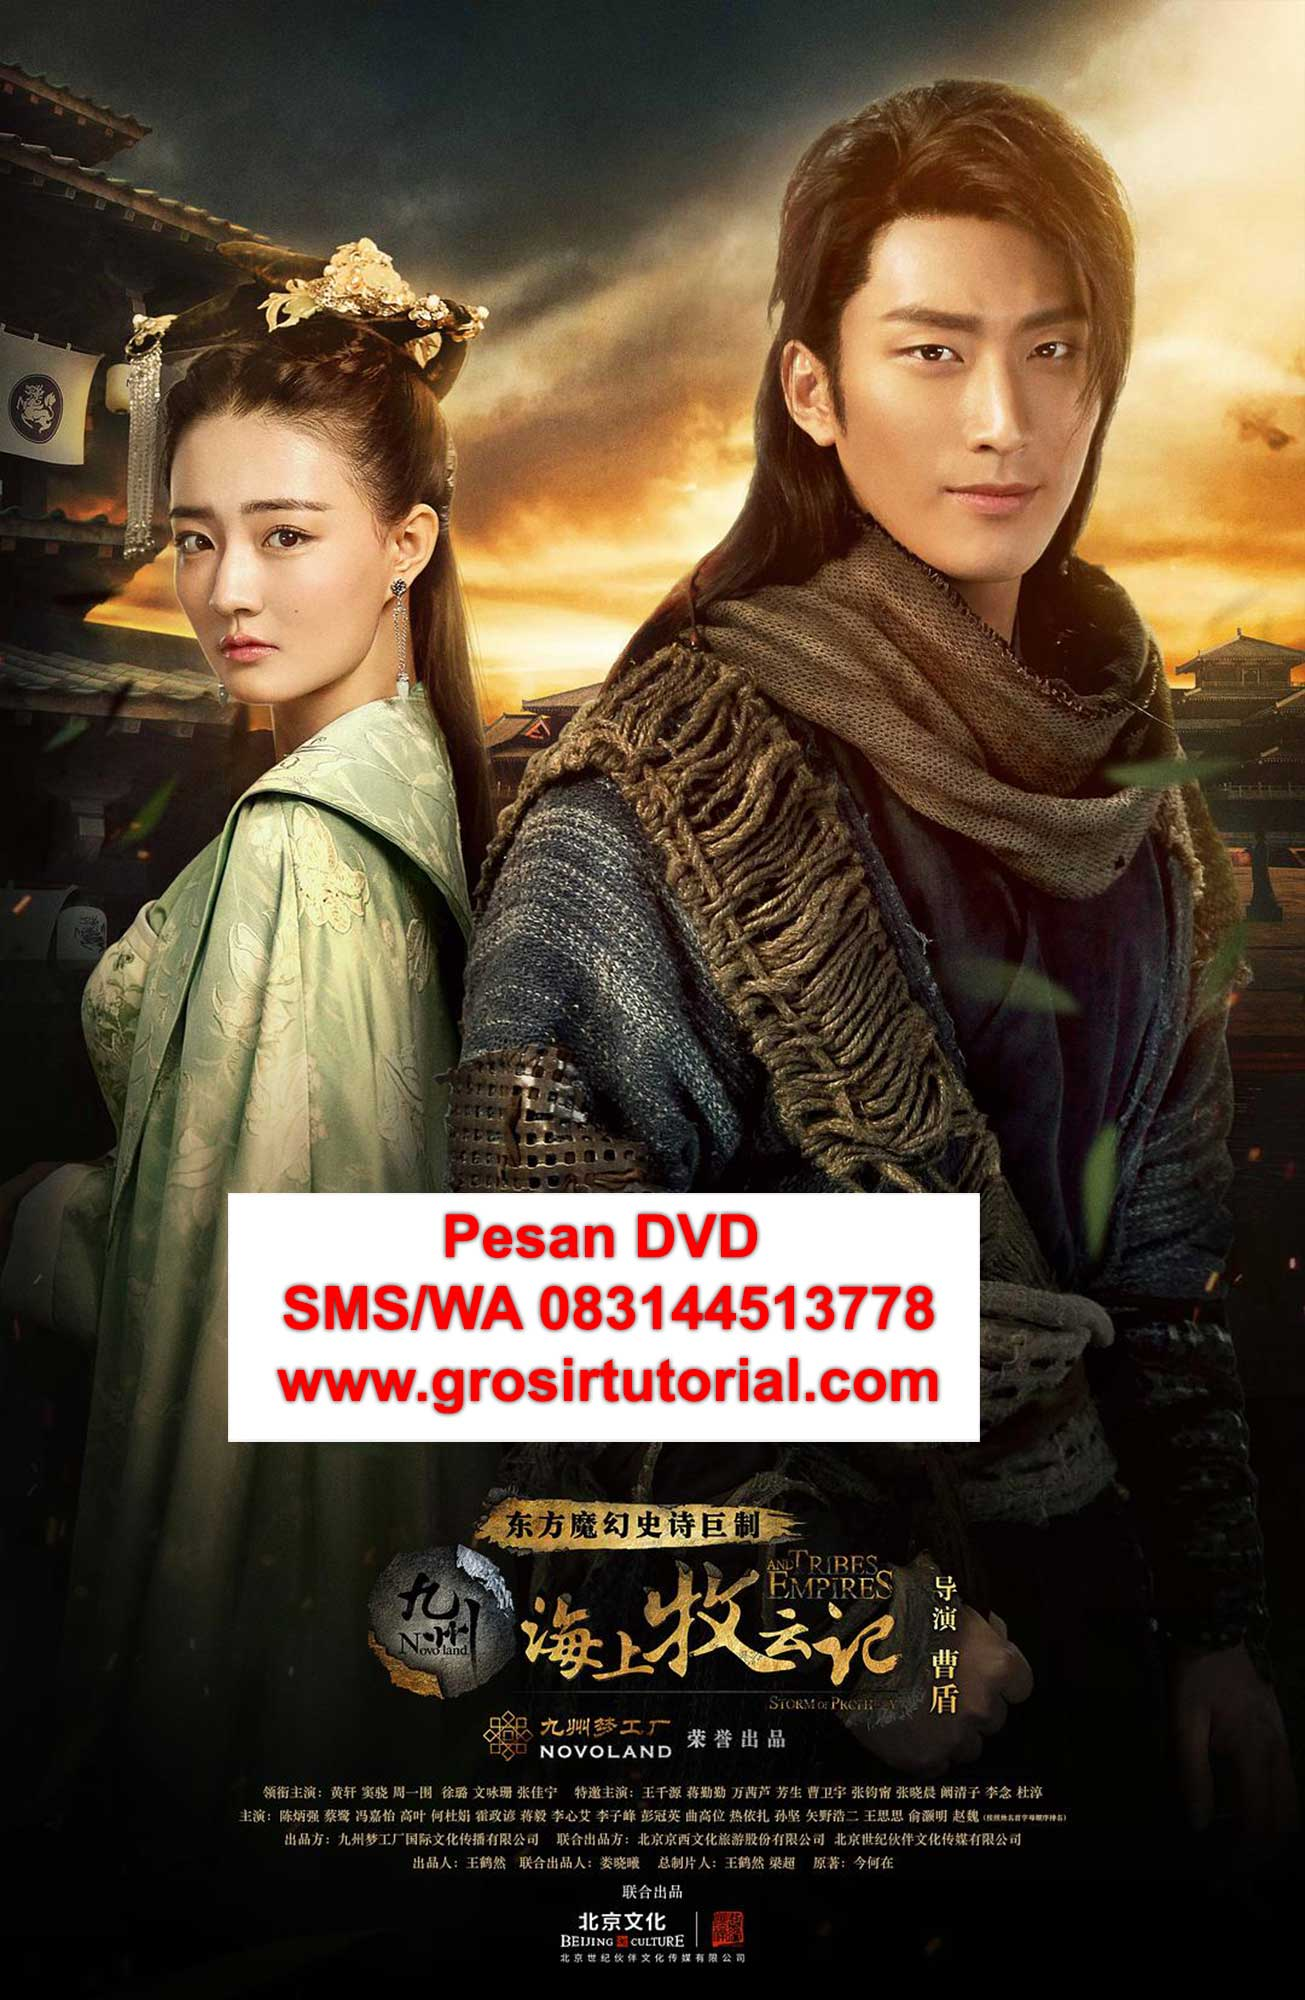 beli-dvd-Mandarin-Tribe-and-Empires-The-Strom-of-Prohecy